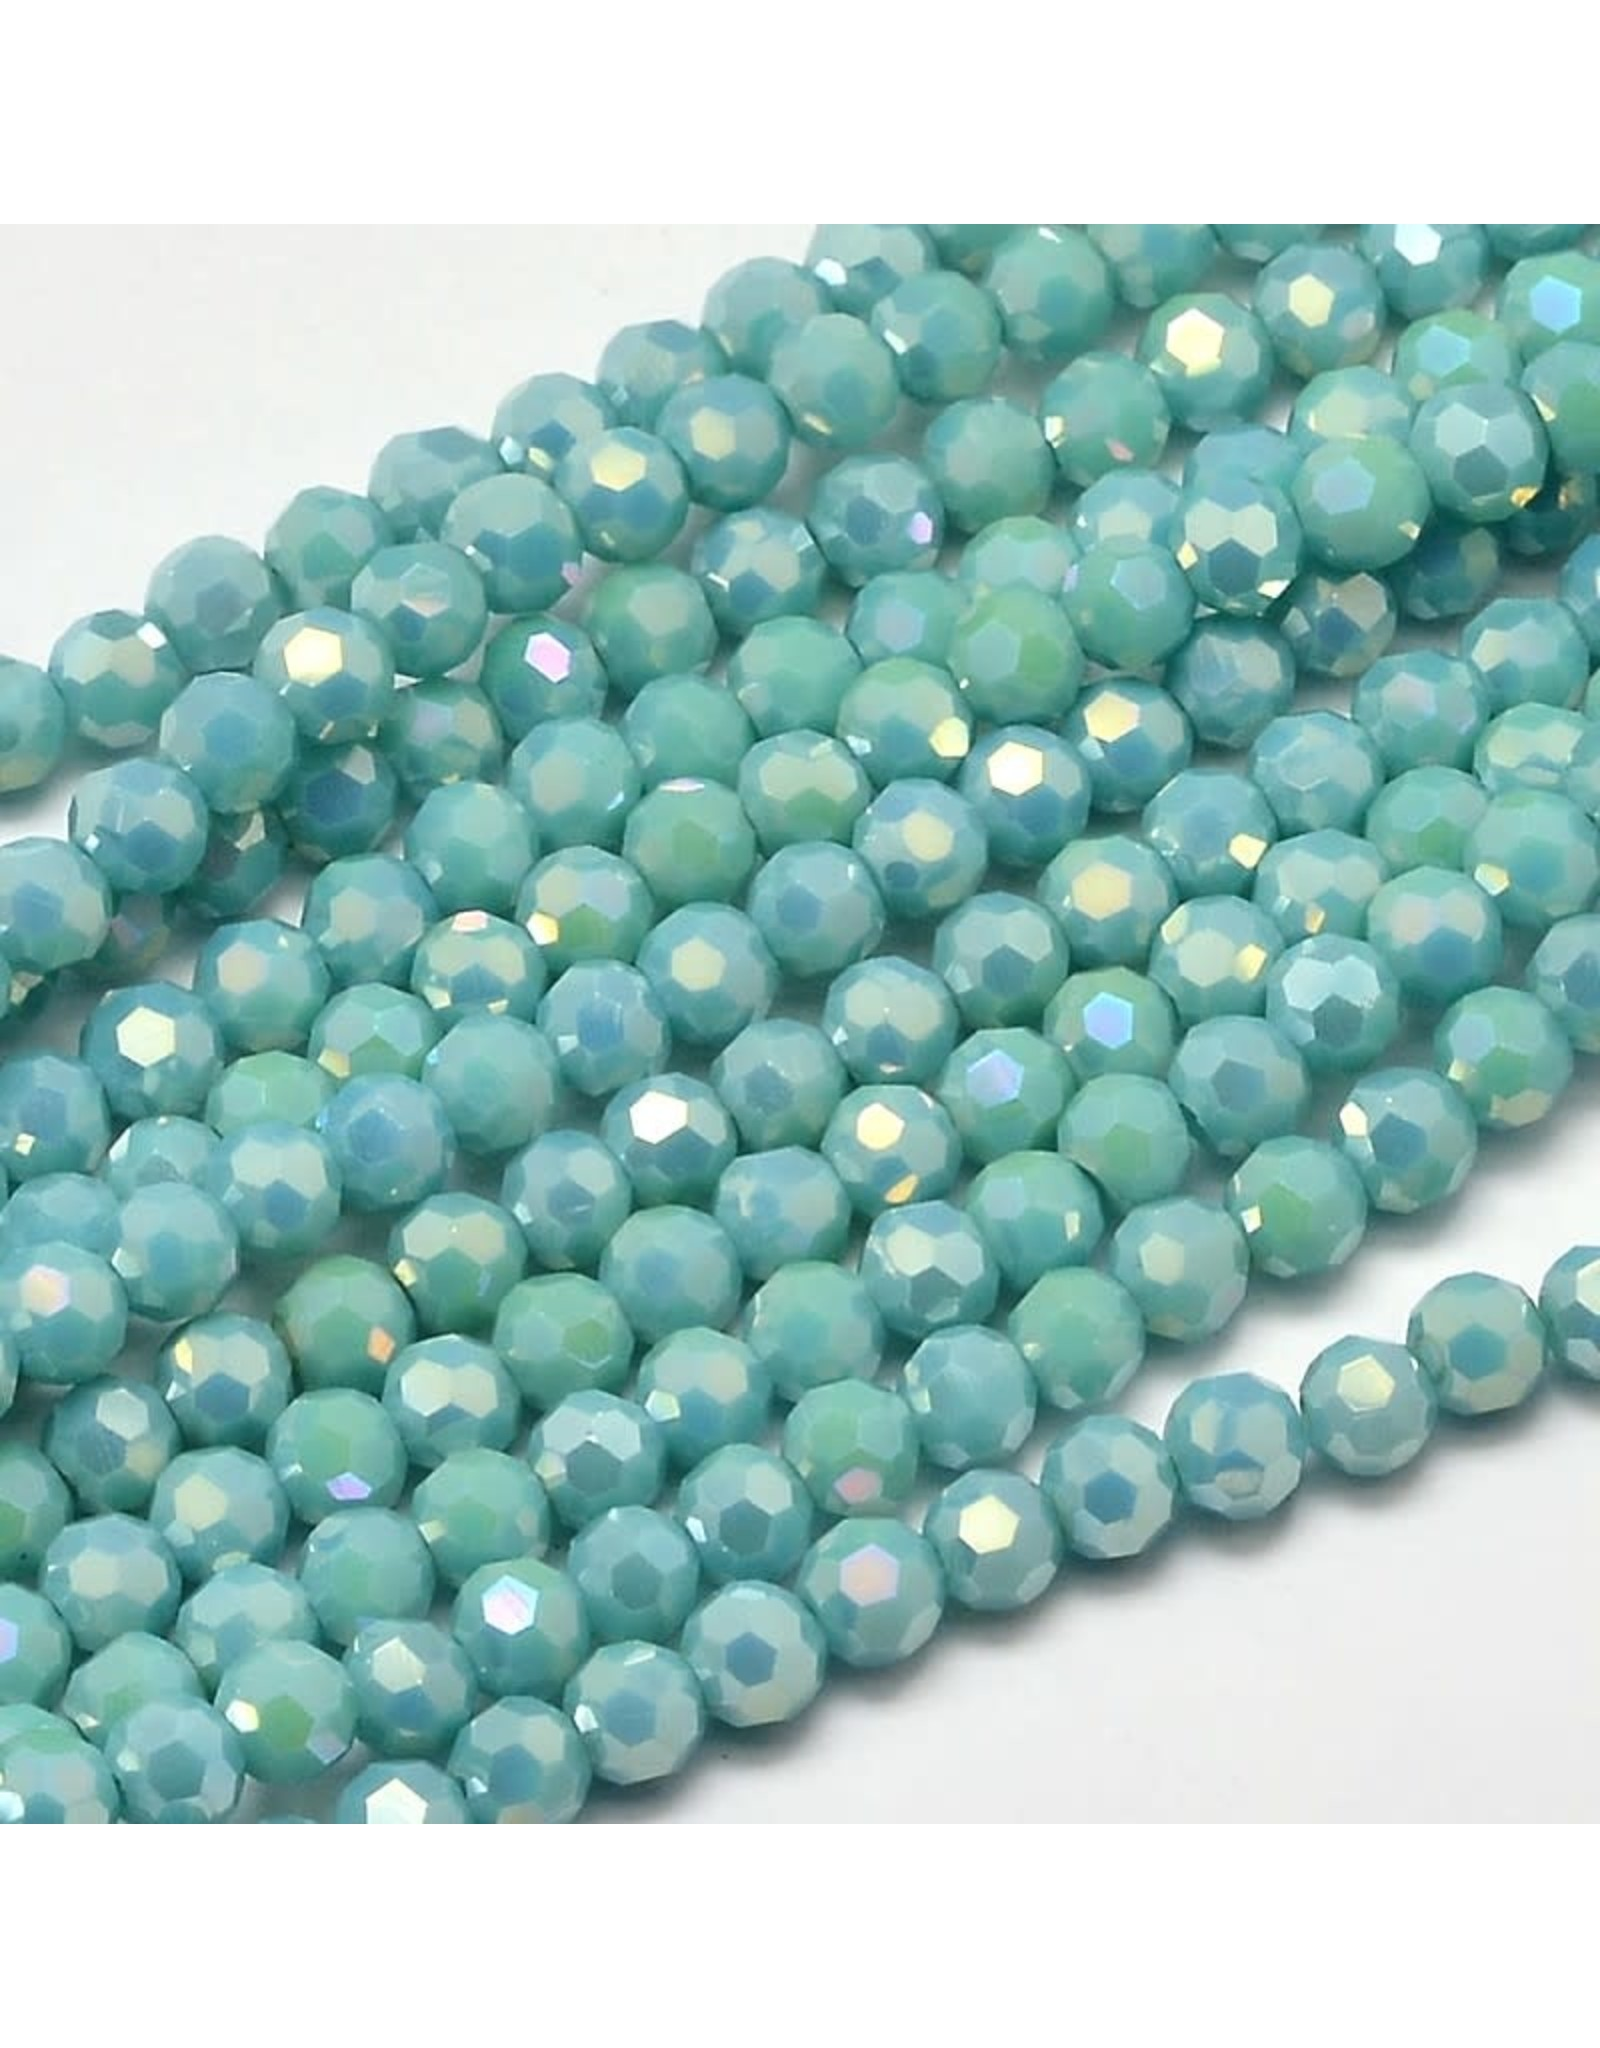 4mm Round Opaque Turquoise Blue AB  x95